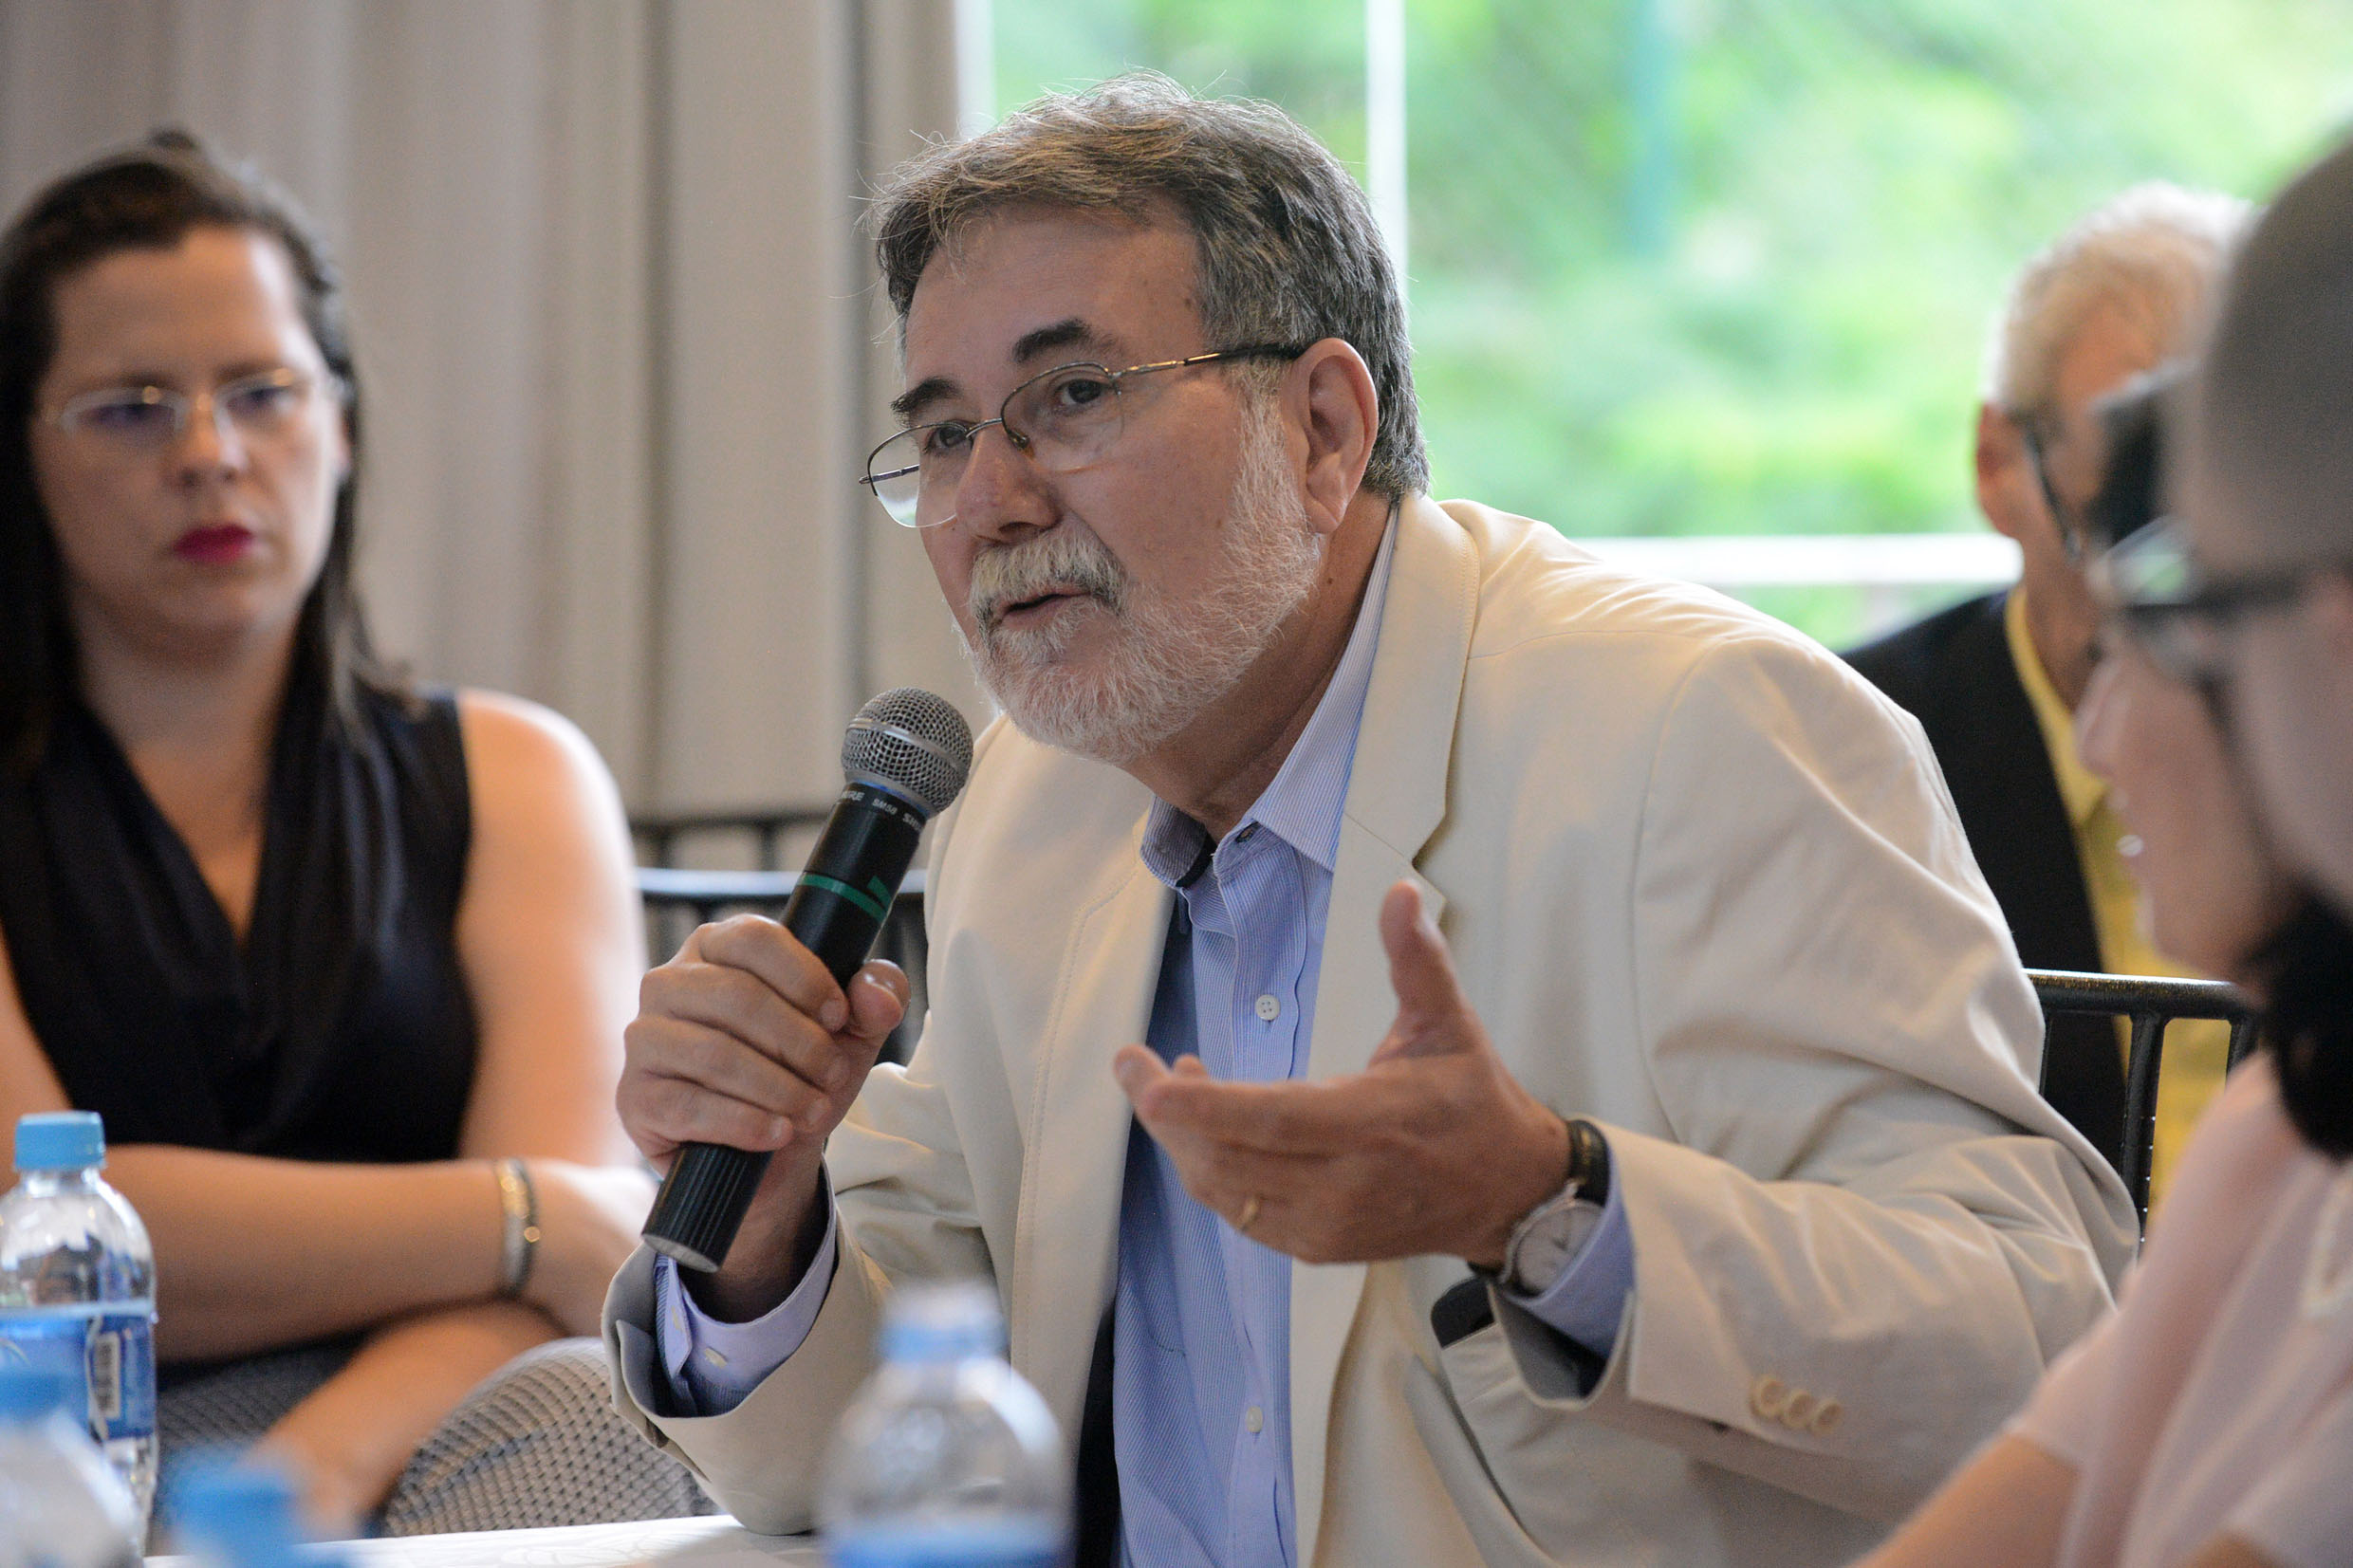 Carlos Américo Pacheco<a style='float:right' href='https://www3.al.sp.gov.br/repositorio/noticia/N-03-2018/fg218623.jpg' target=_blank><img src='/_img/material-file-download-white.png' width='14px' alt='Clique para baixar a imagem'></a>